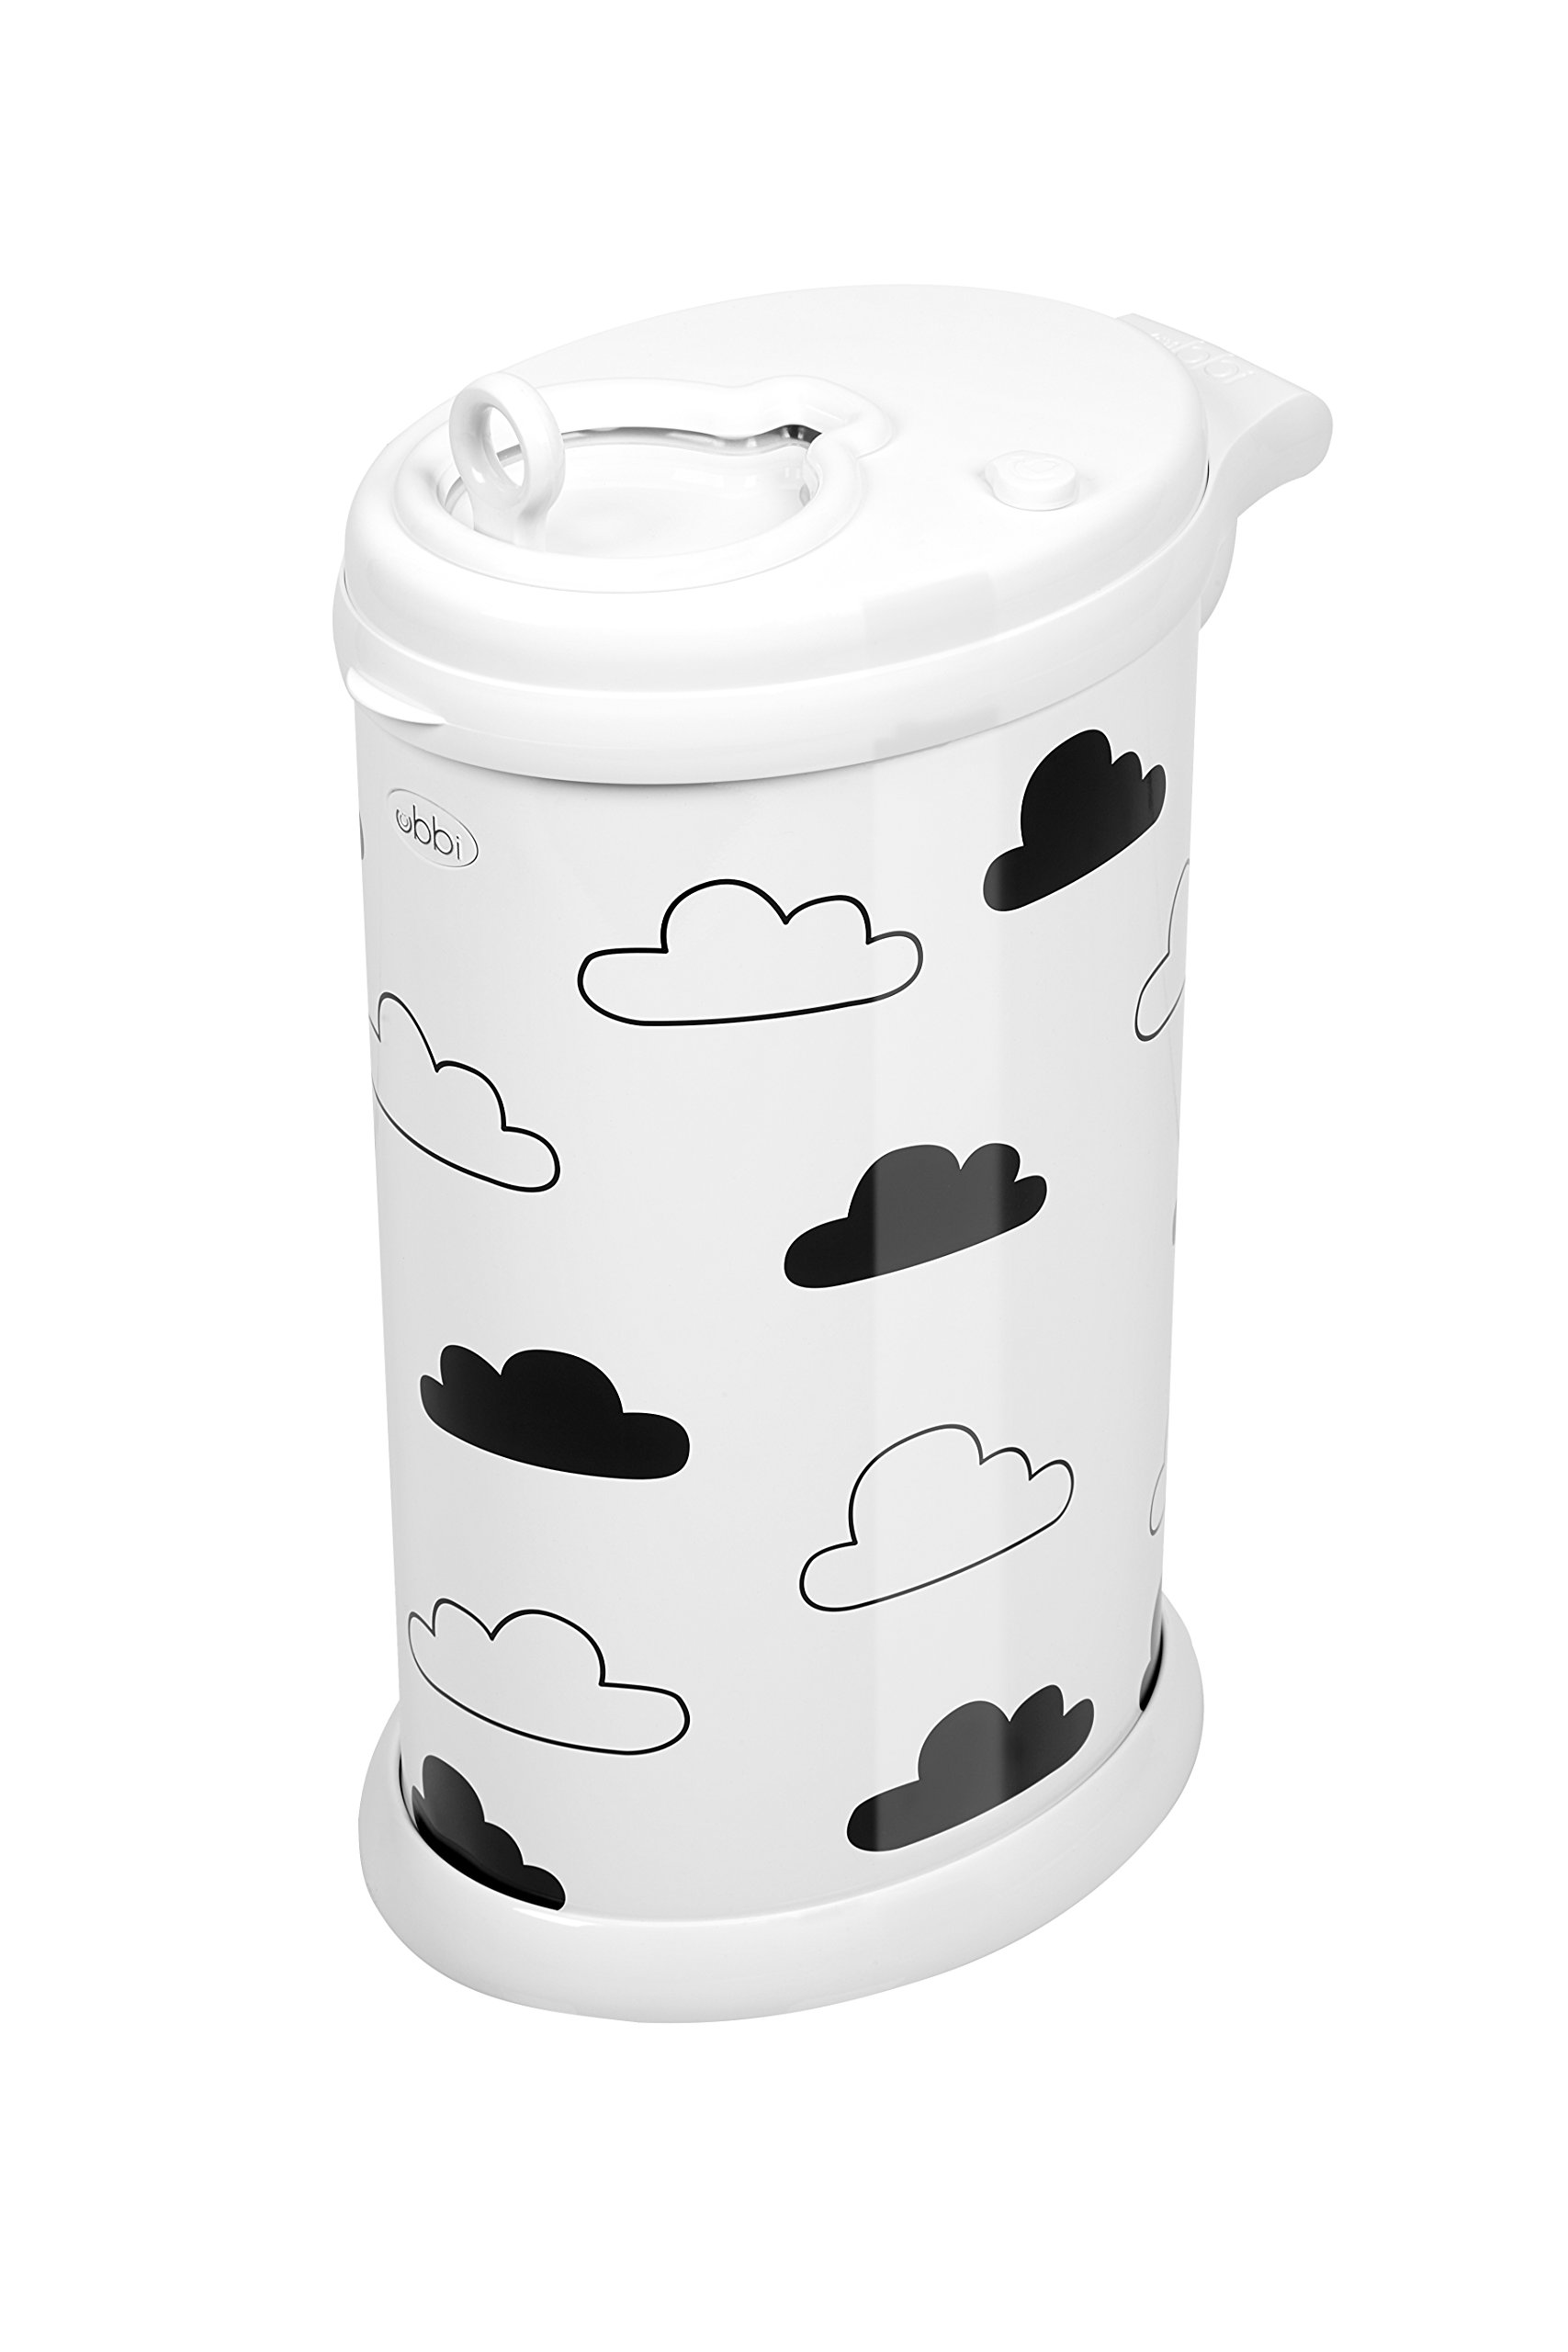 Ubbi Money Saving, No Special Bag Required, Steel Odor Locking Diaper Pail, White Clouds